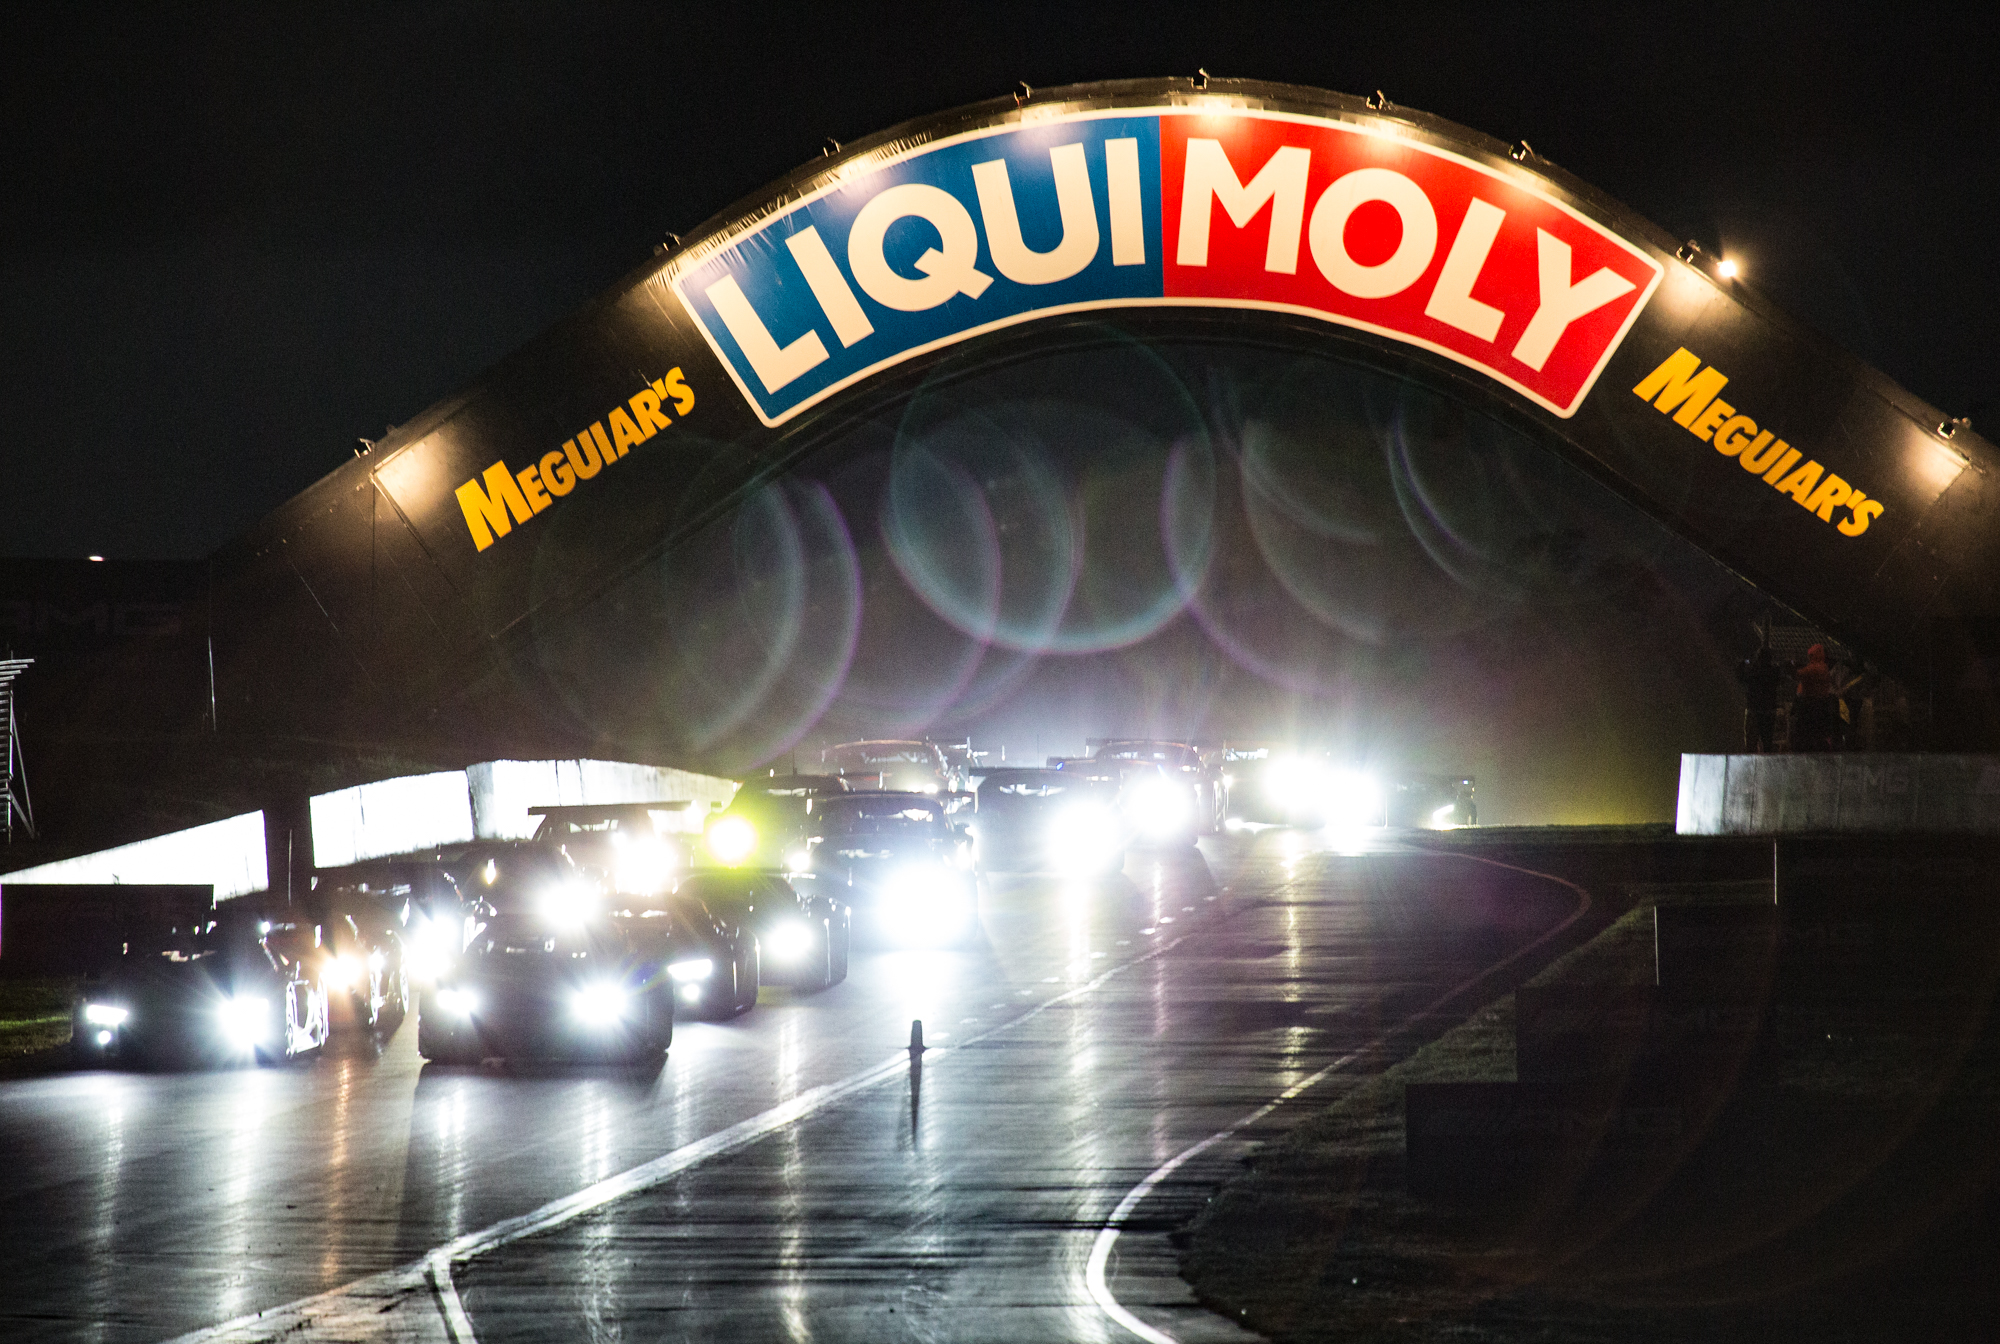 https://www.liqui-moly.com/fileadmin/user_upload/Presse/Pressemitteilungen_DE/2019/01/Bathurst_2018a.jpg